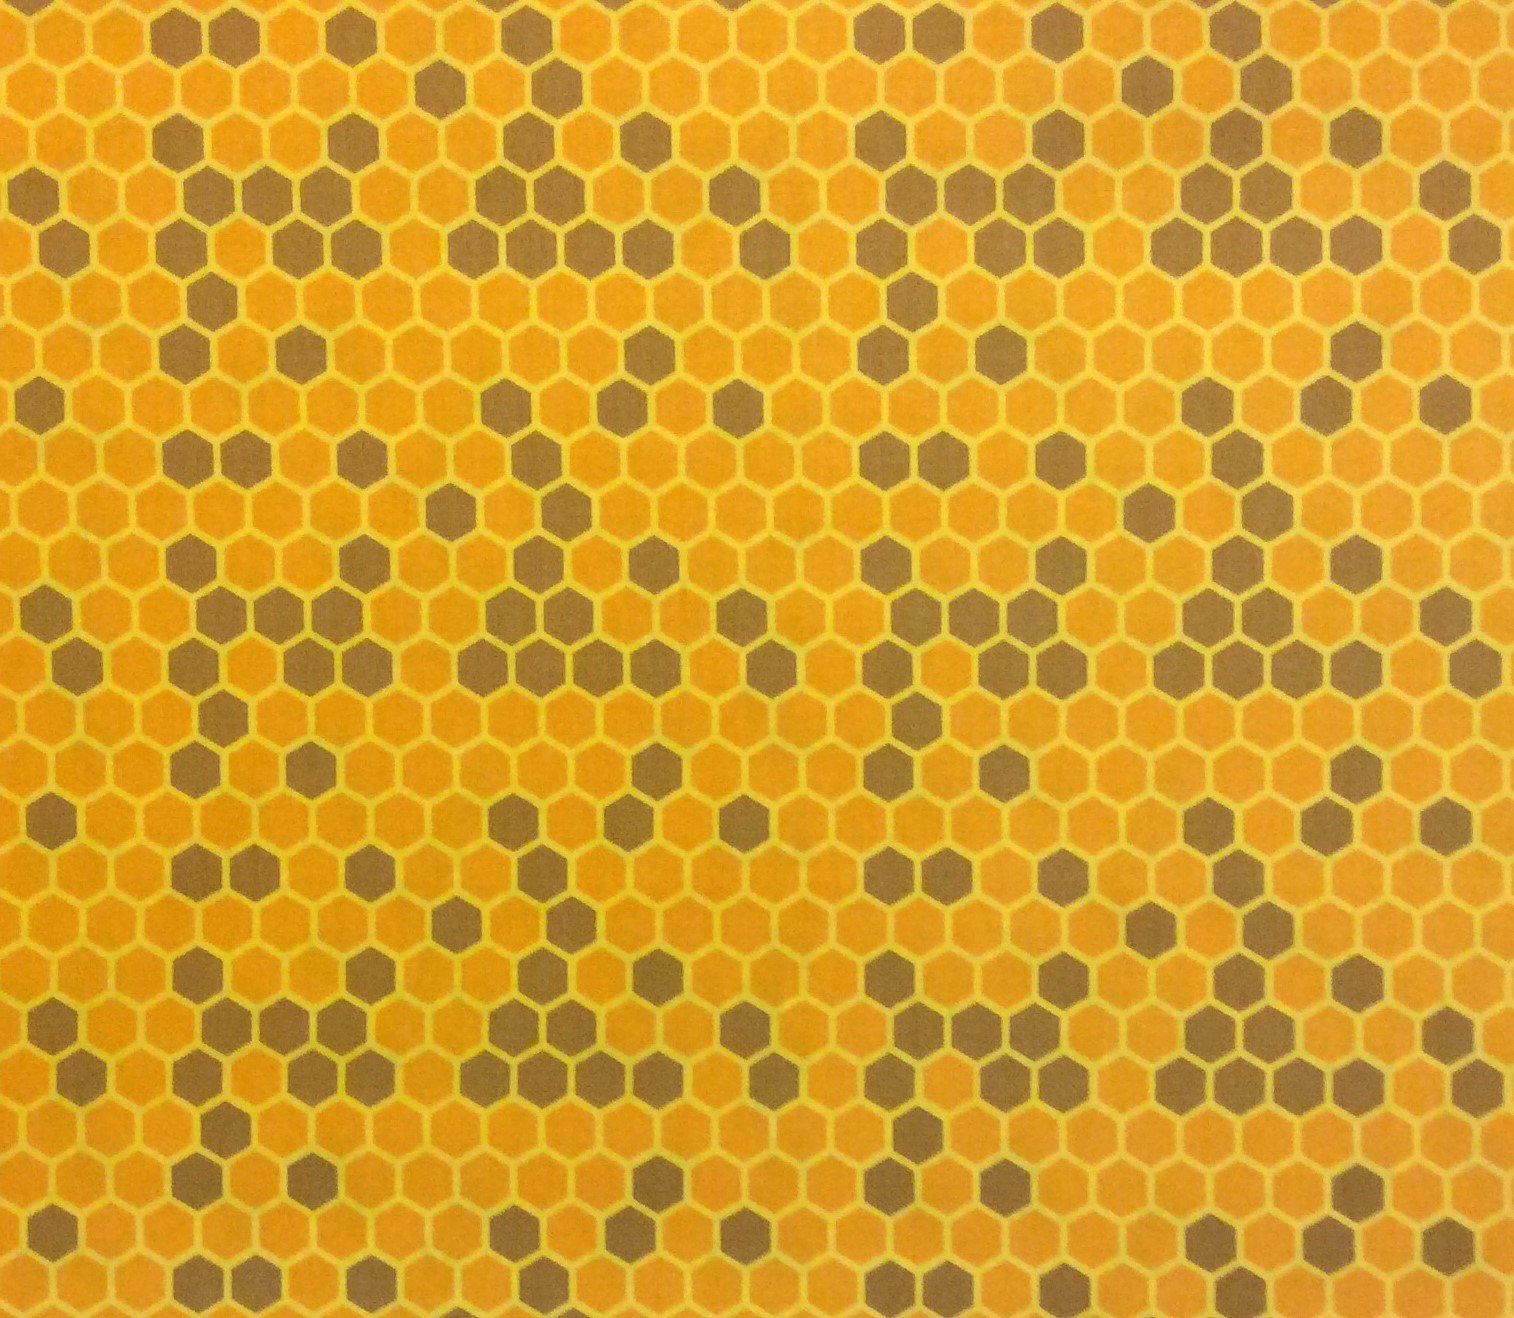 RK86 Honeycomb Urban Beekeeping Honey Bees Crafting Quilting Cotton Quilt Fabric